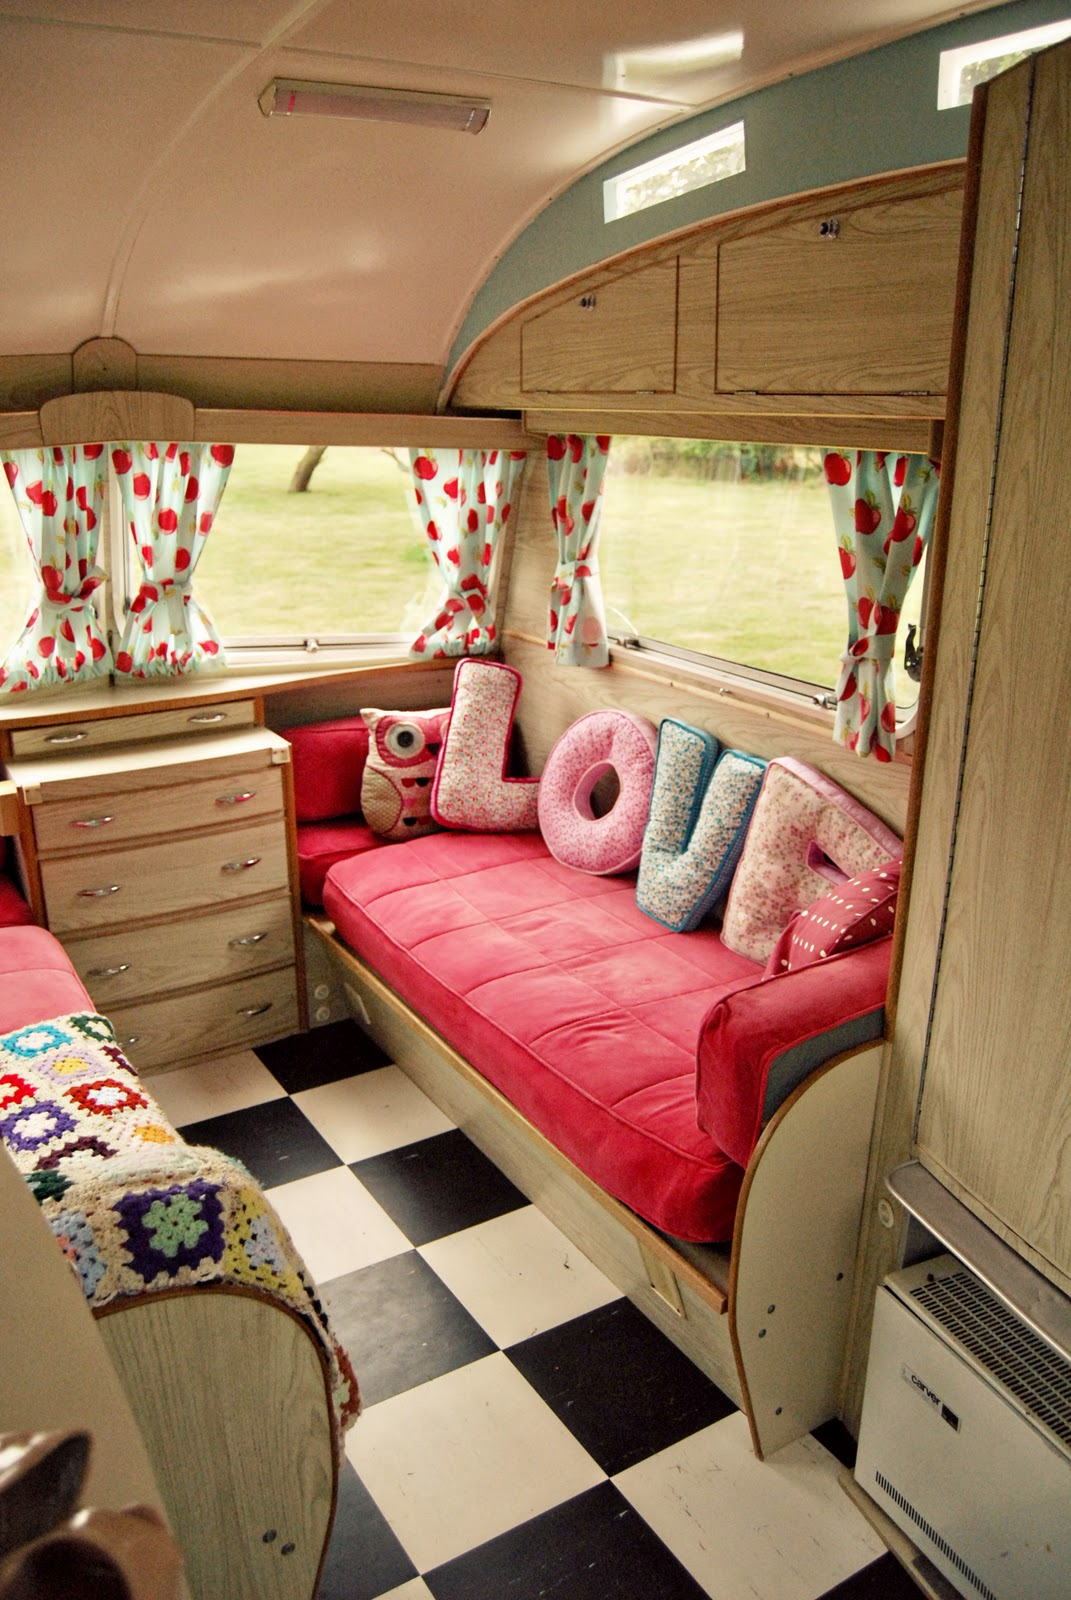 caravan revamp ideas on pinterest vintage caravans vintage caravan interiors and campers. Black Bedroom Furniture Sets. Home Design Ideas